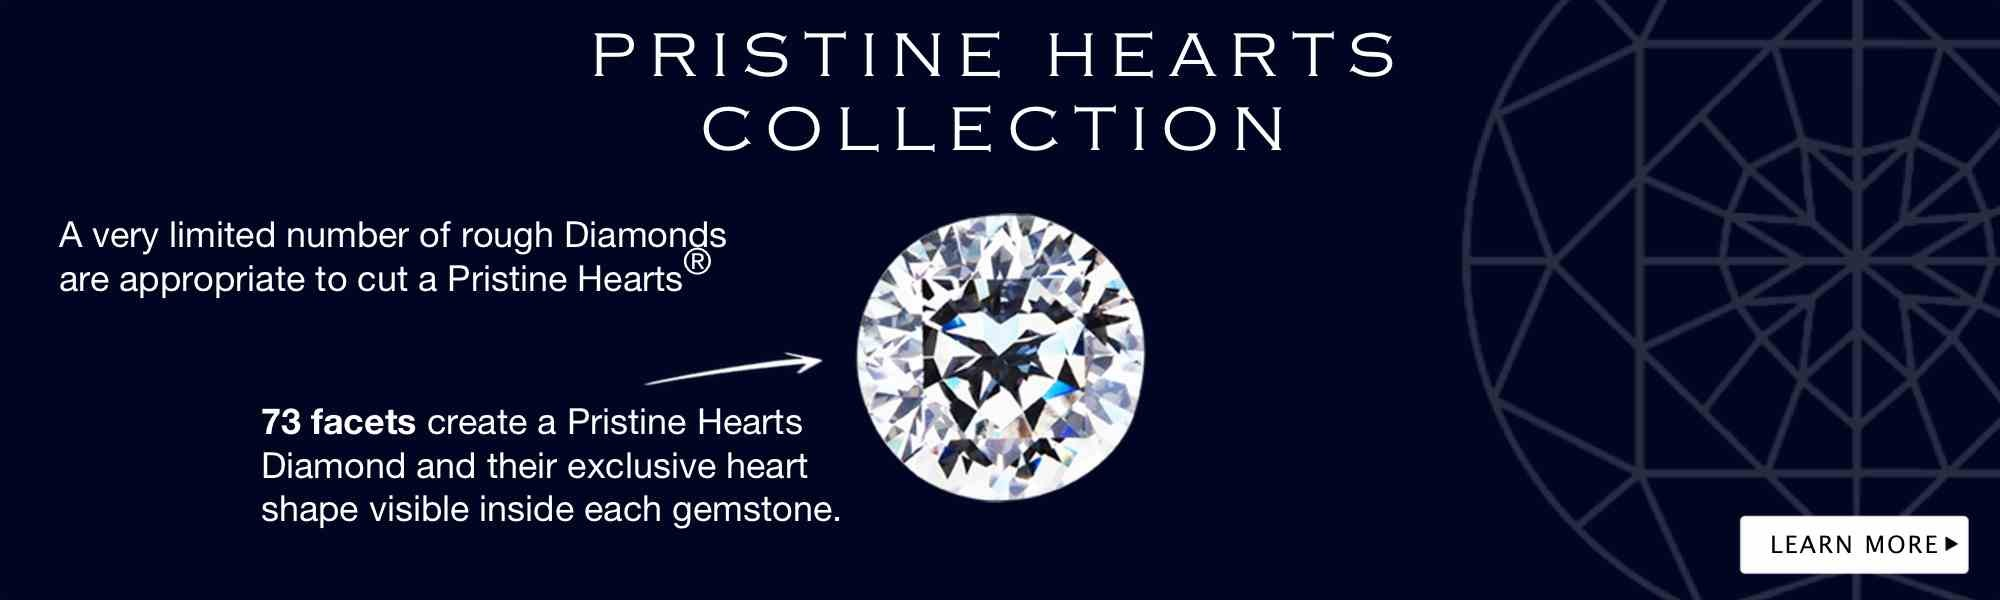 Pristine Hearts Amoro Diamond Collection